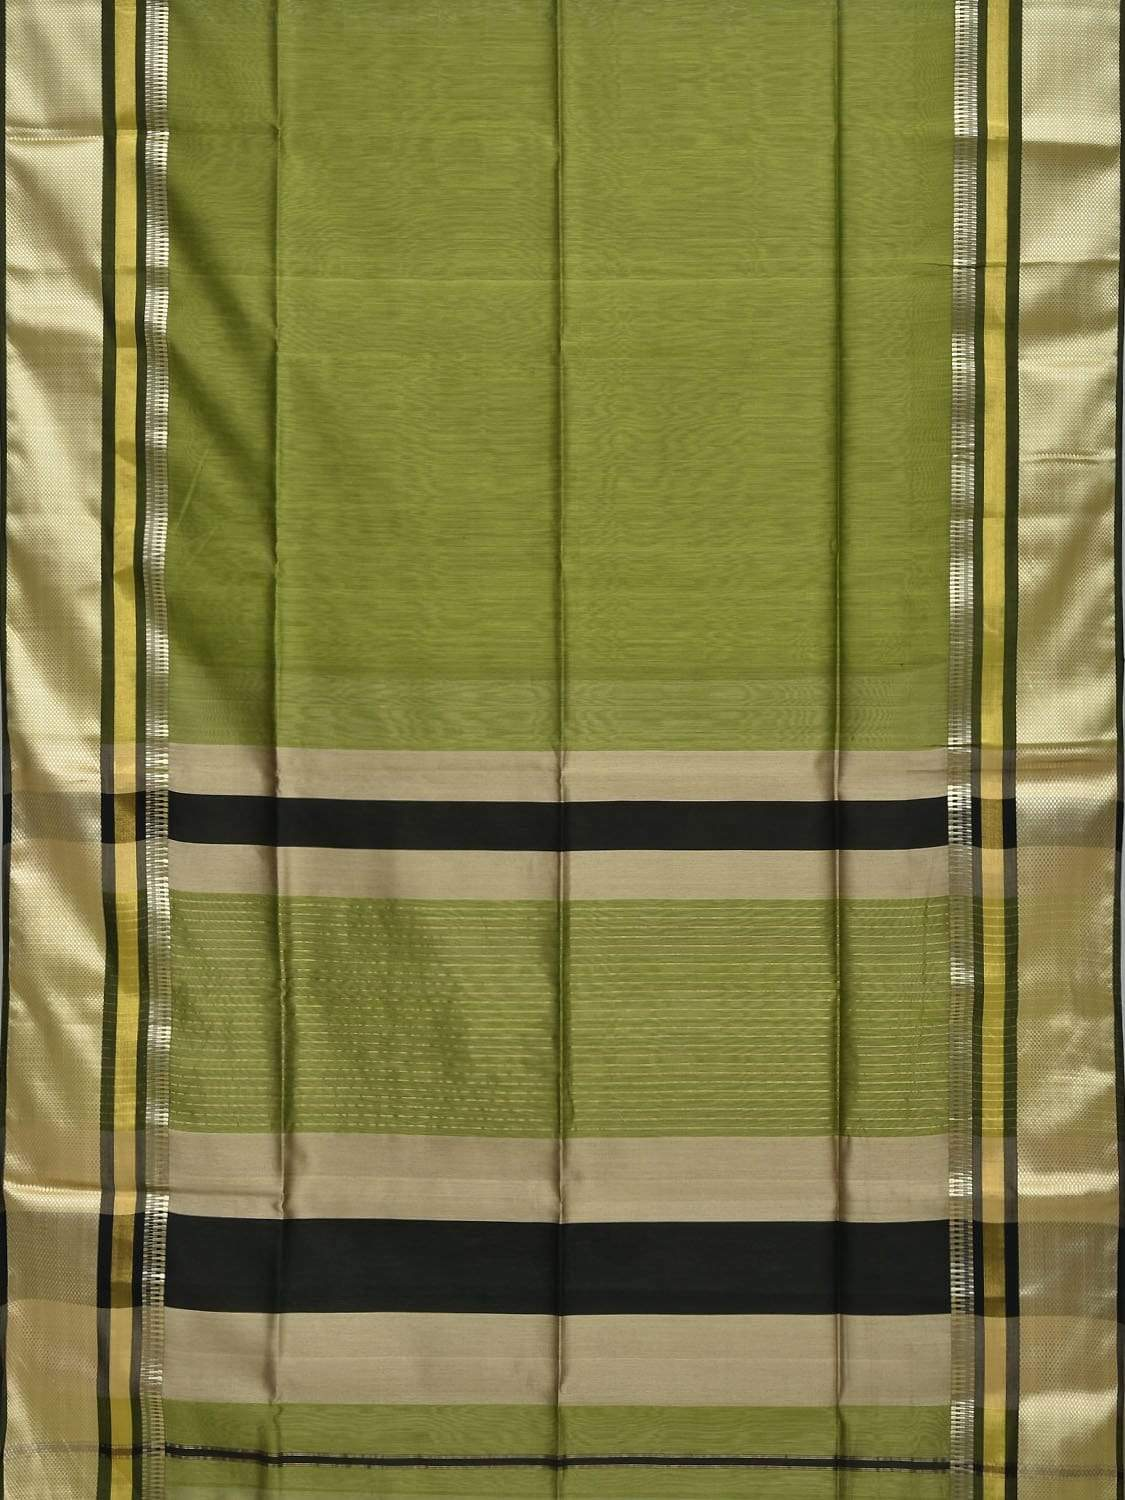 Green Maheshwari Cotton Silk Handloom Plain Saree with Border Design m0109